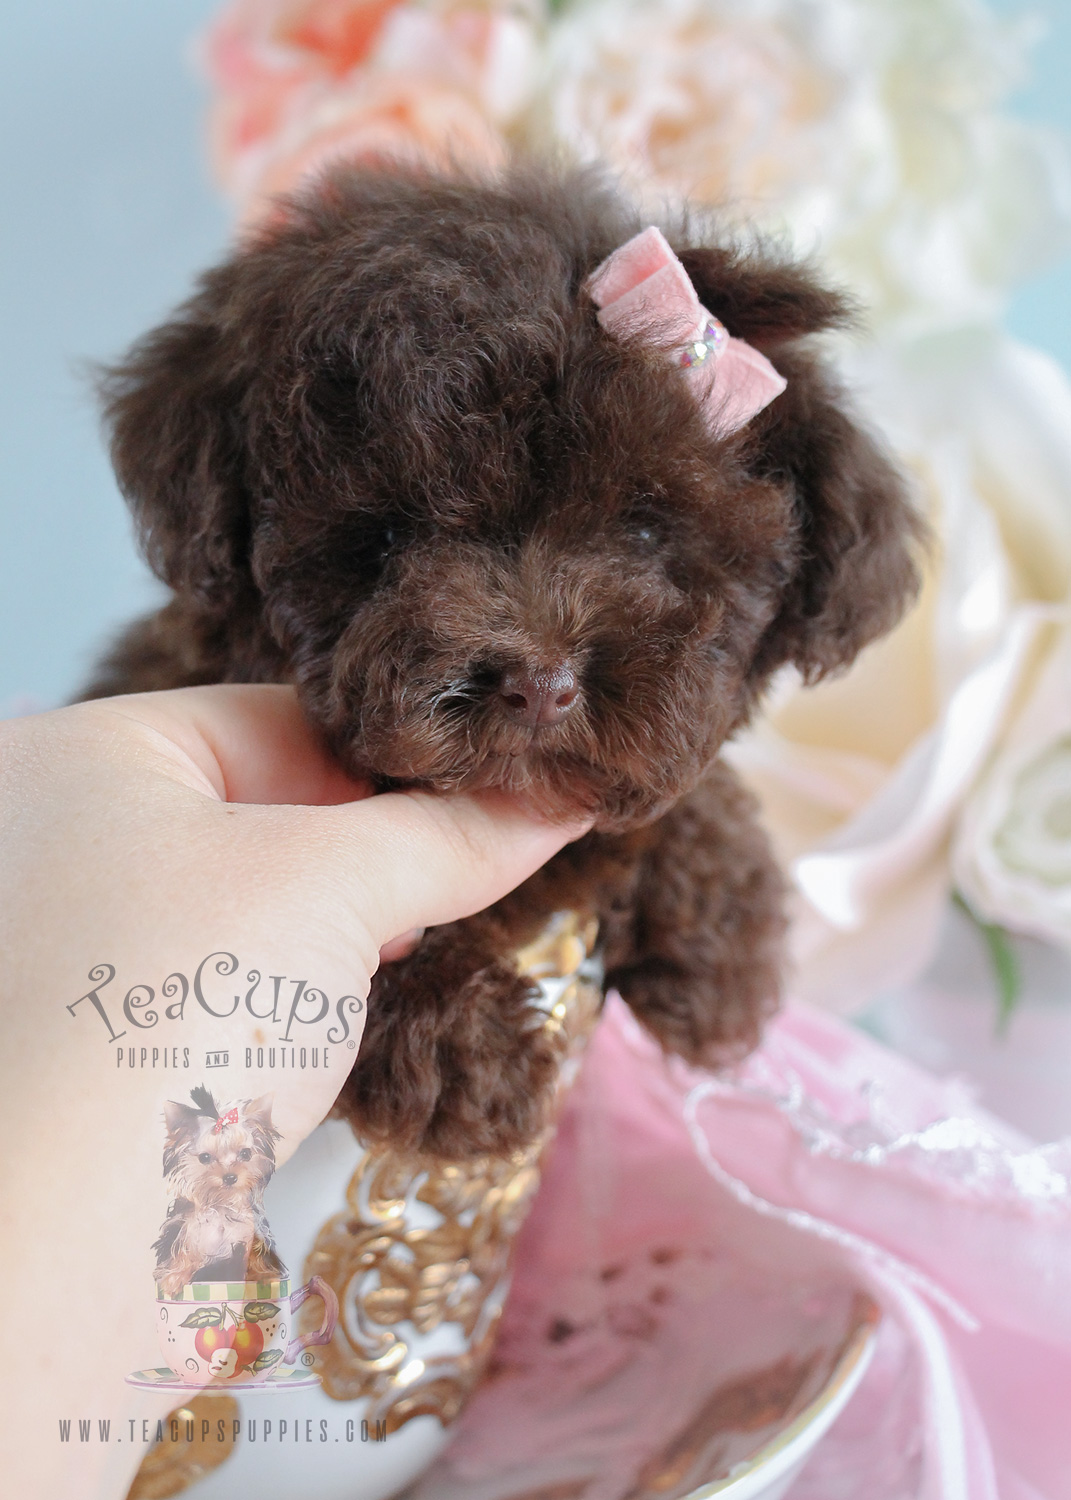 Tiny Toy Poodle Puppies For Sale Teacups Puppies Amp Boutique